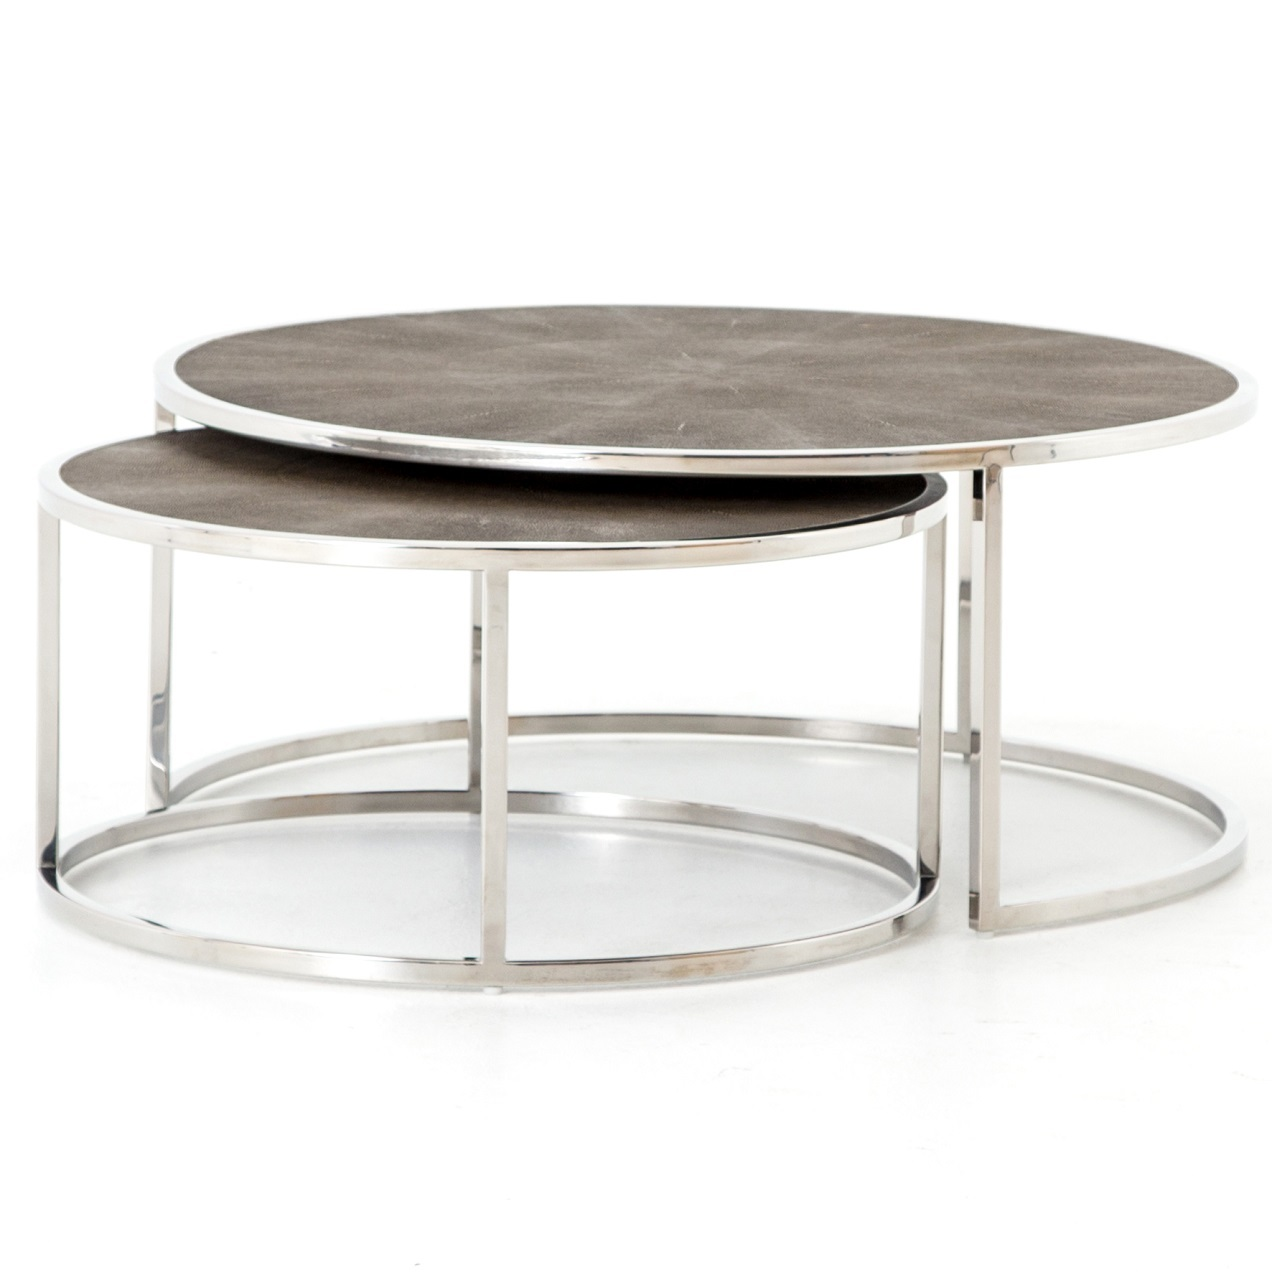 hollywood shagreen nesting coffee tables stainless steel zin home vben prm glass end homesense tures fire pit clearance martha stewart outdoor furniture ethan allen british